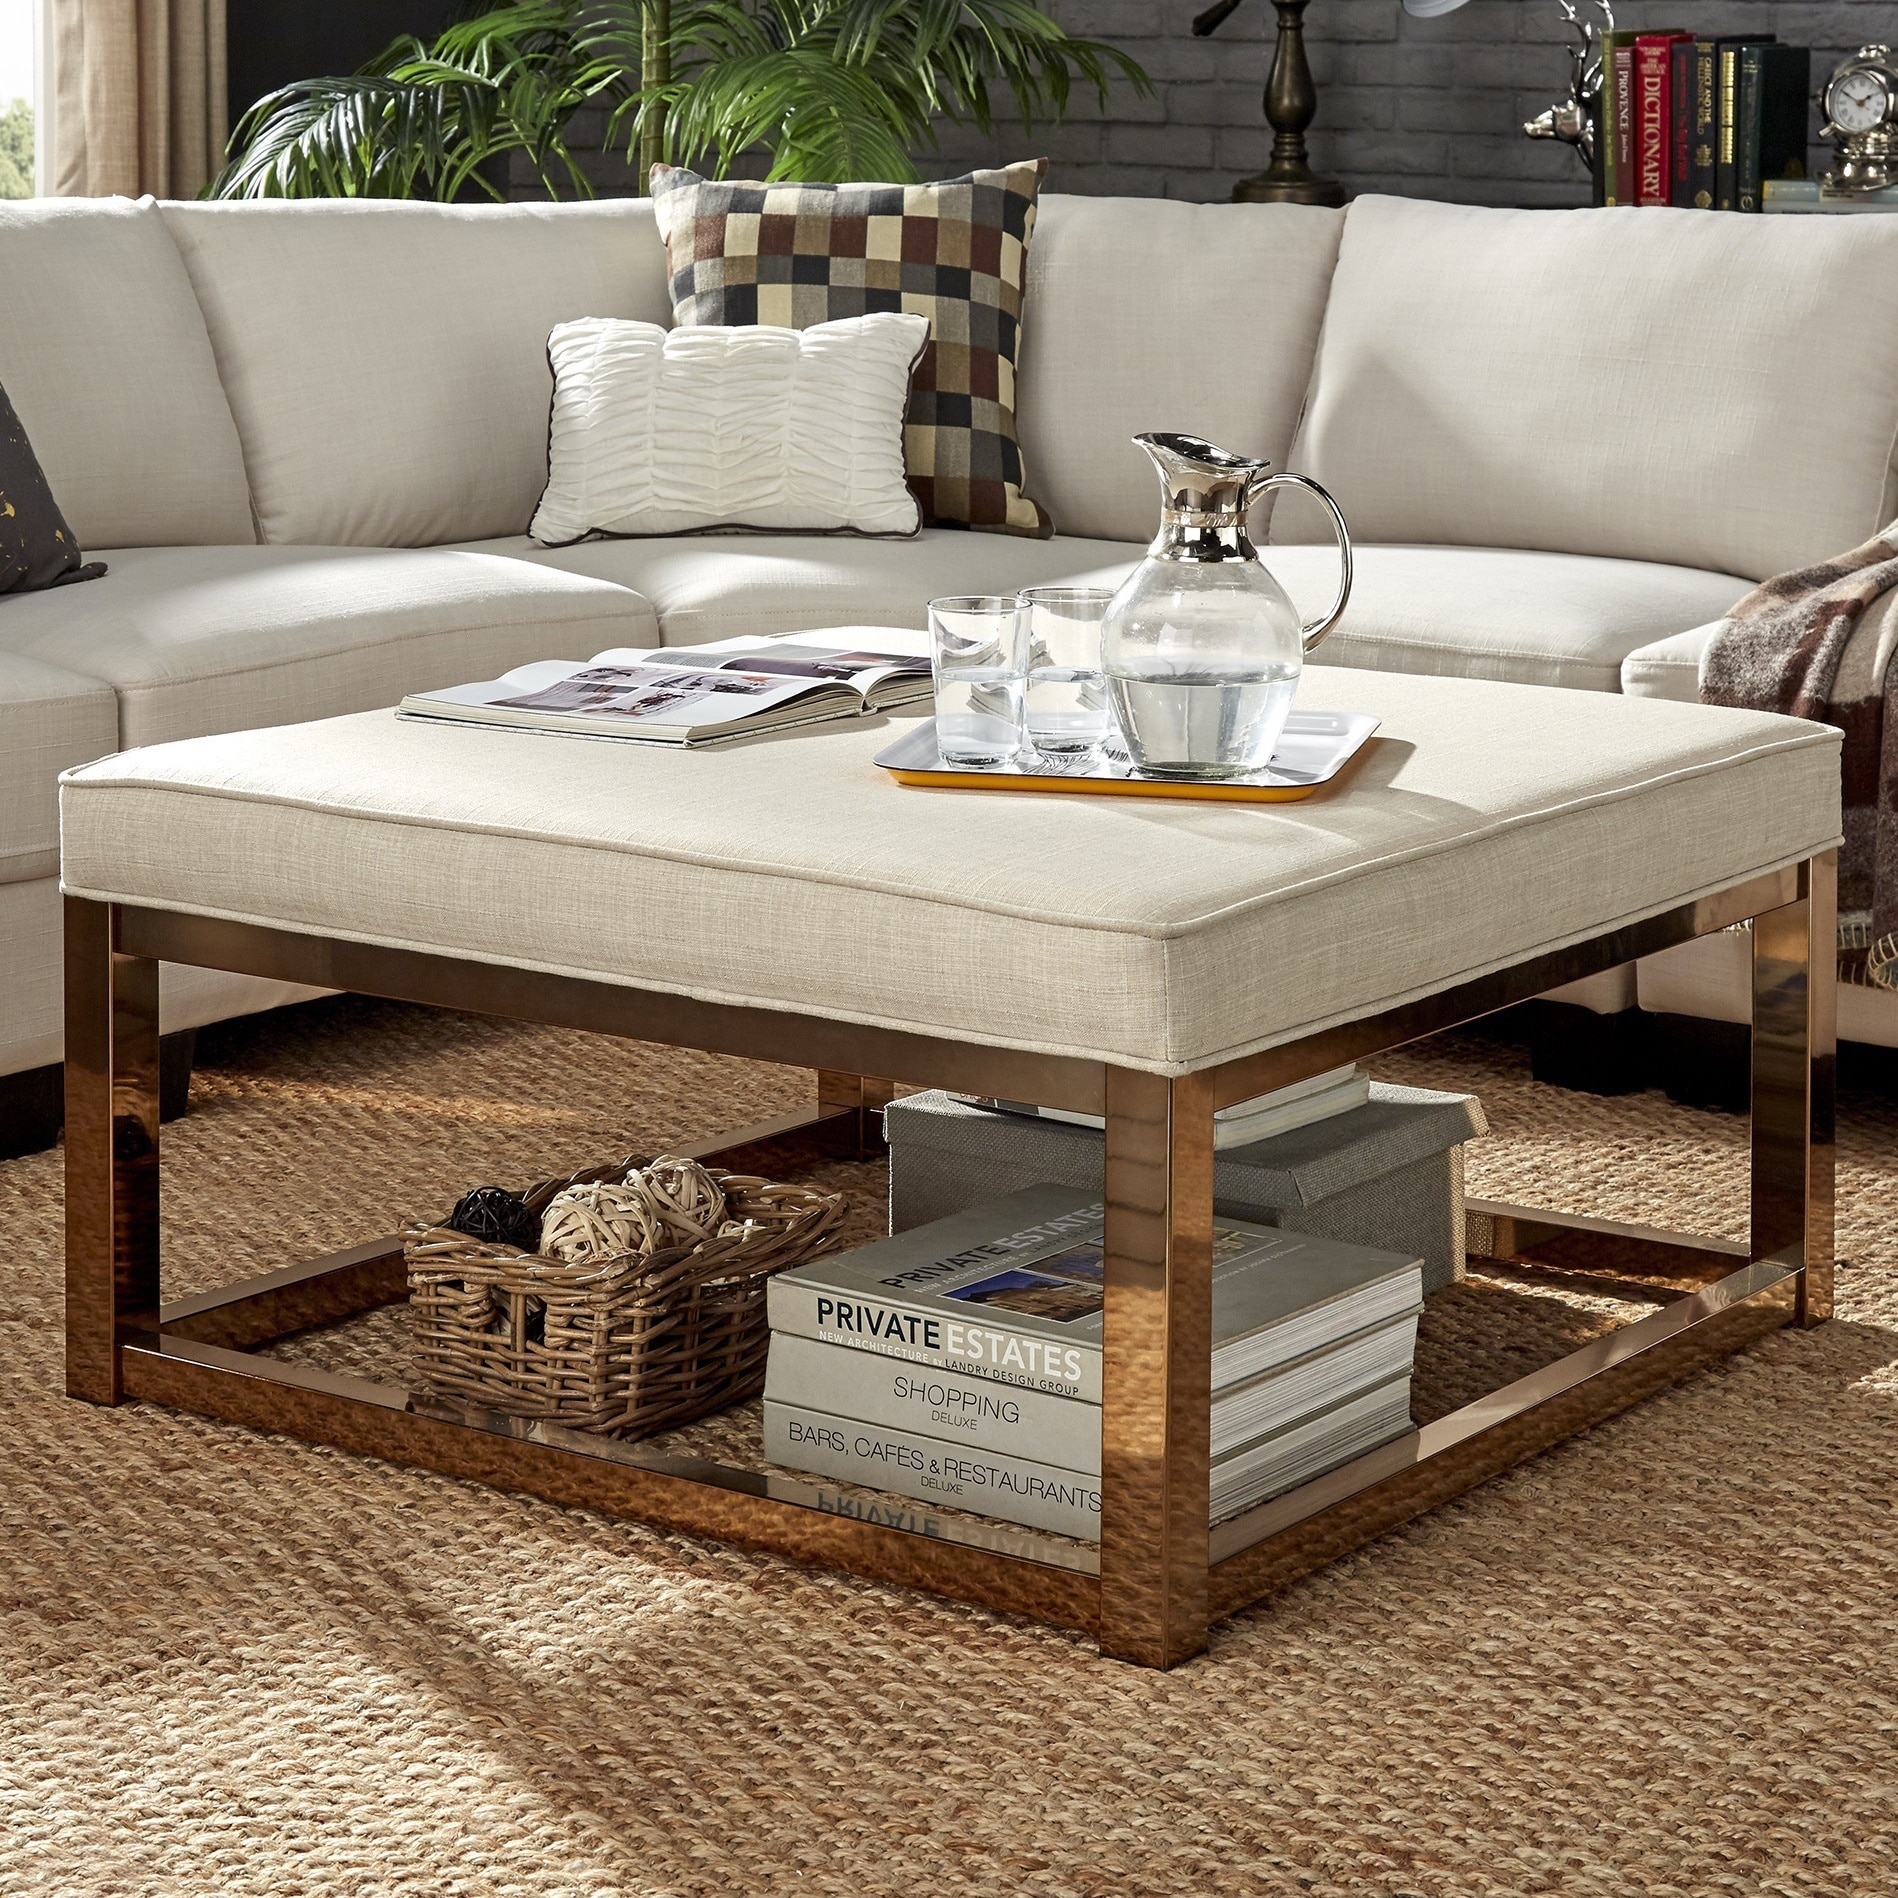 Magnificent Details About Solene Square Base Ottoman Coffee Table Champagne Gold By Large Machost Co Dining Chair Design Ideas Machostcouk